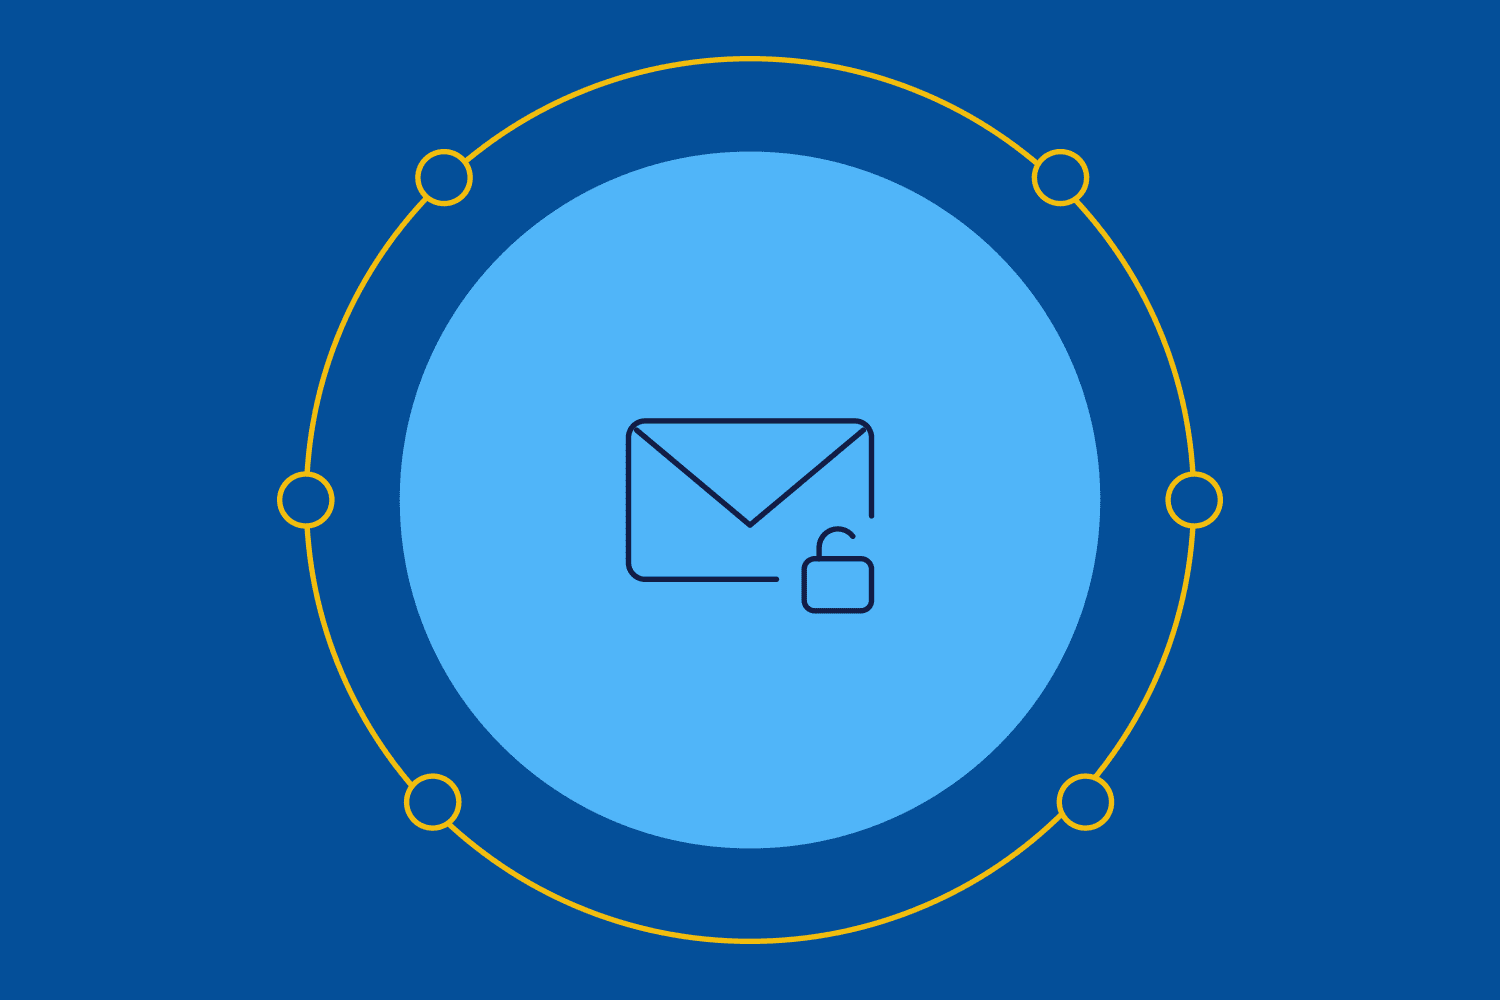 Email icon with security lock to represent DMARC